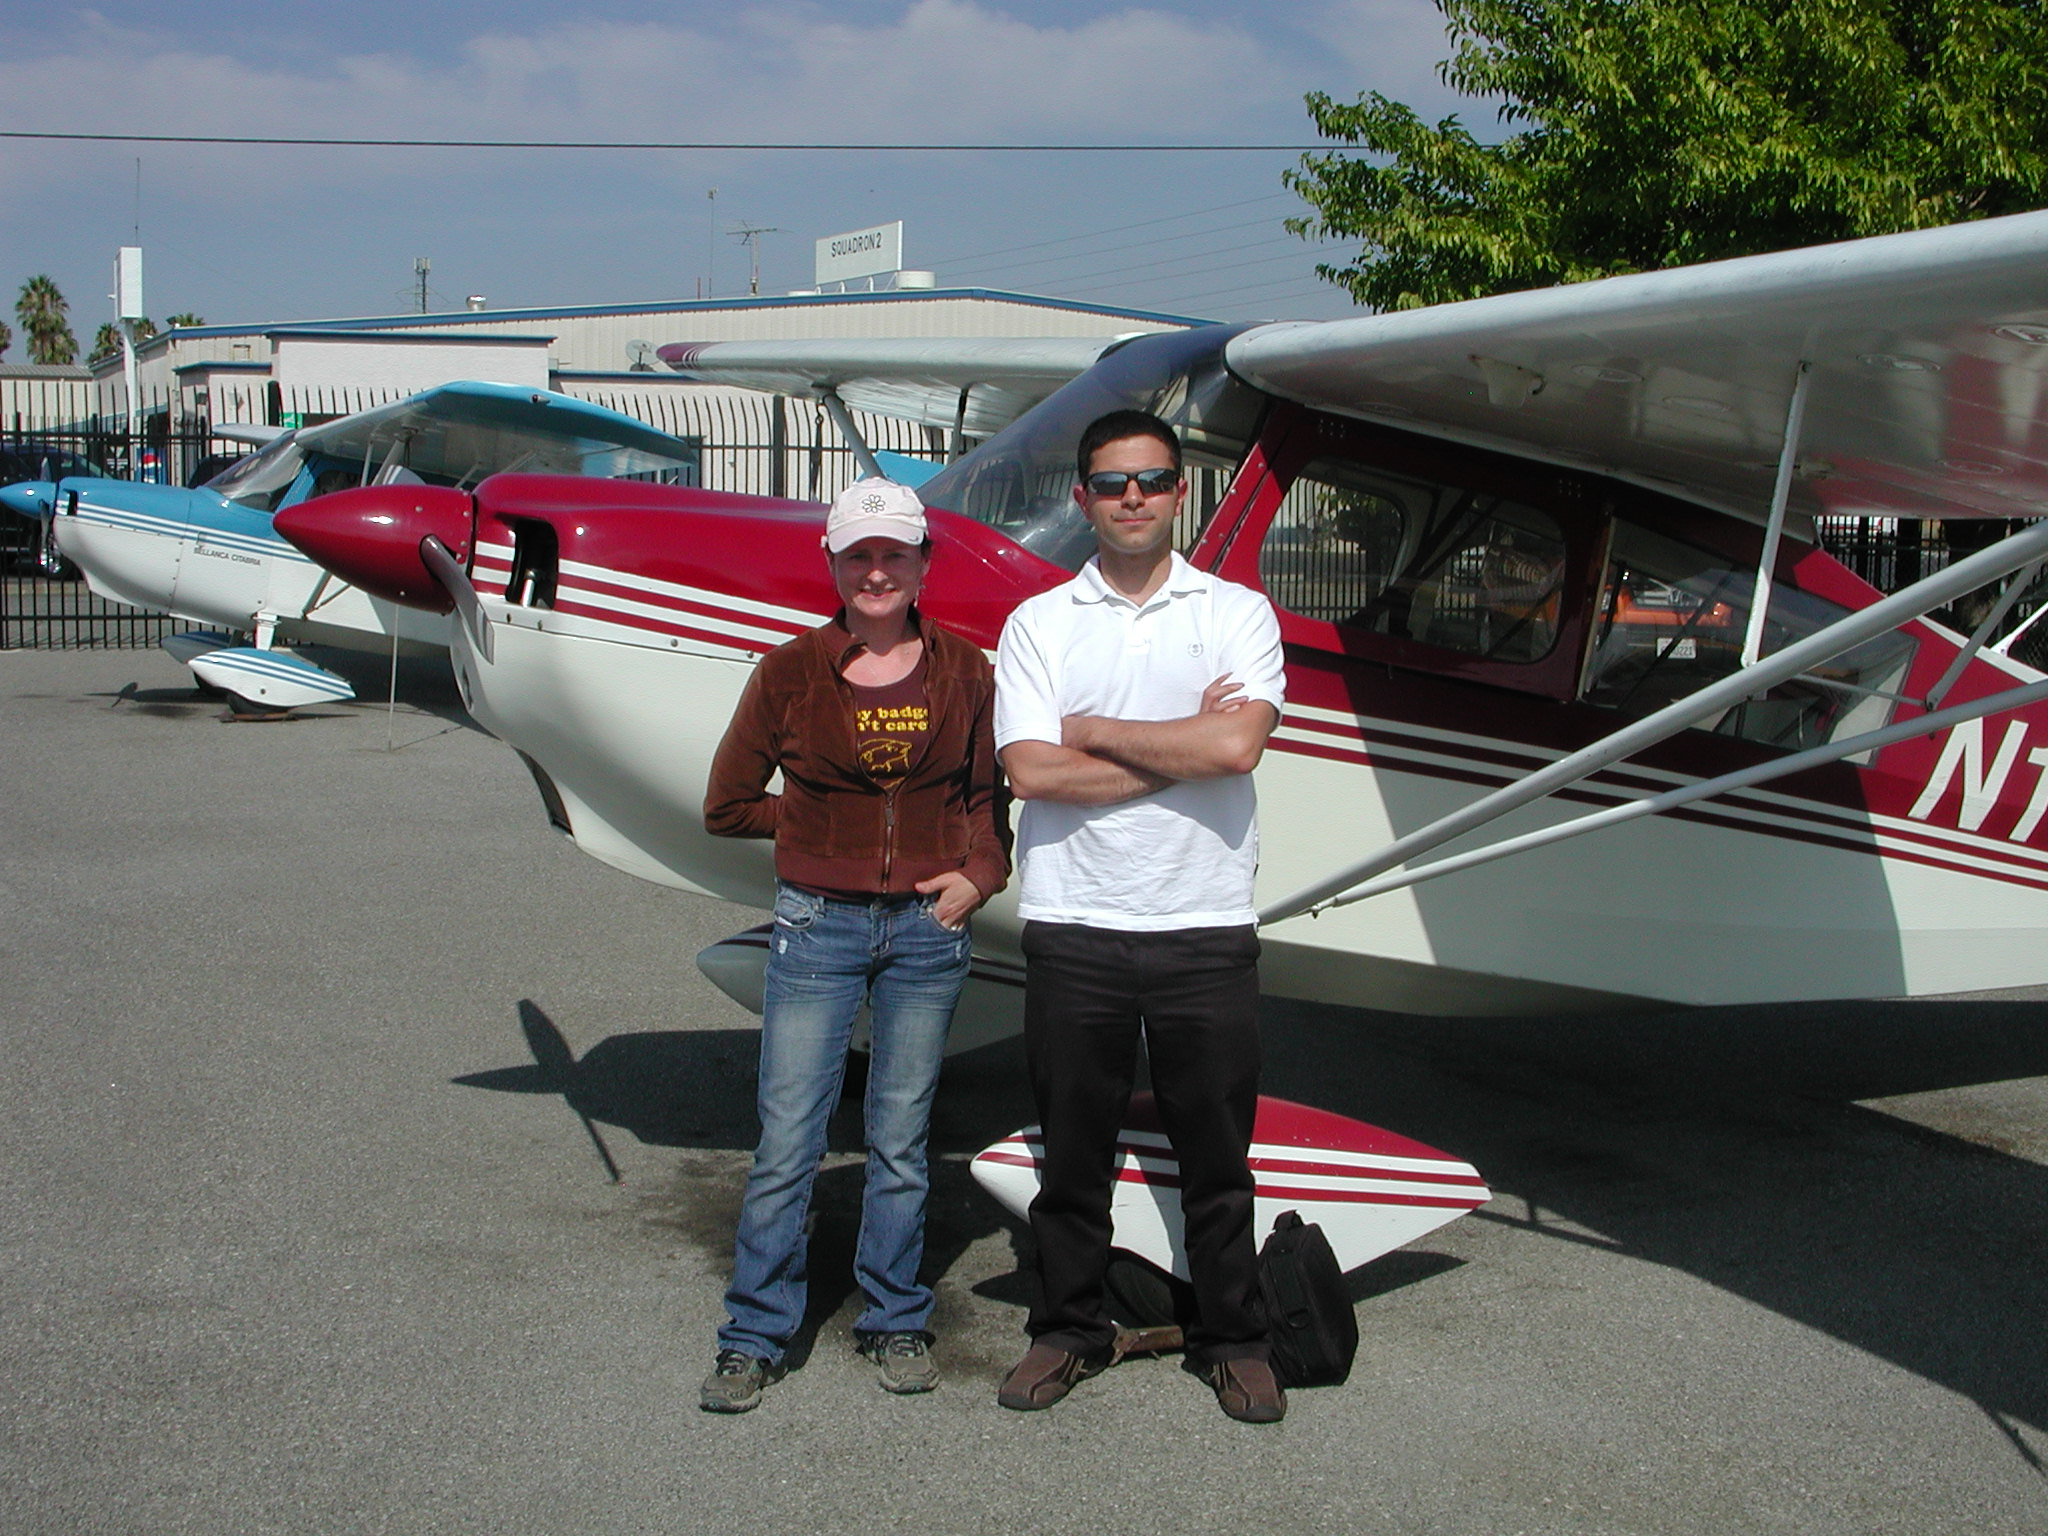 Reza Zadeh goes solo in Citabria at AeroDynamic Aviation located at Reid Hillview Airport in San Jose, CA.